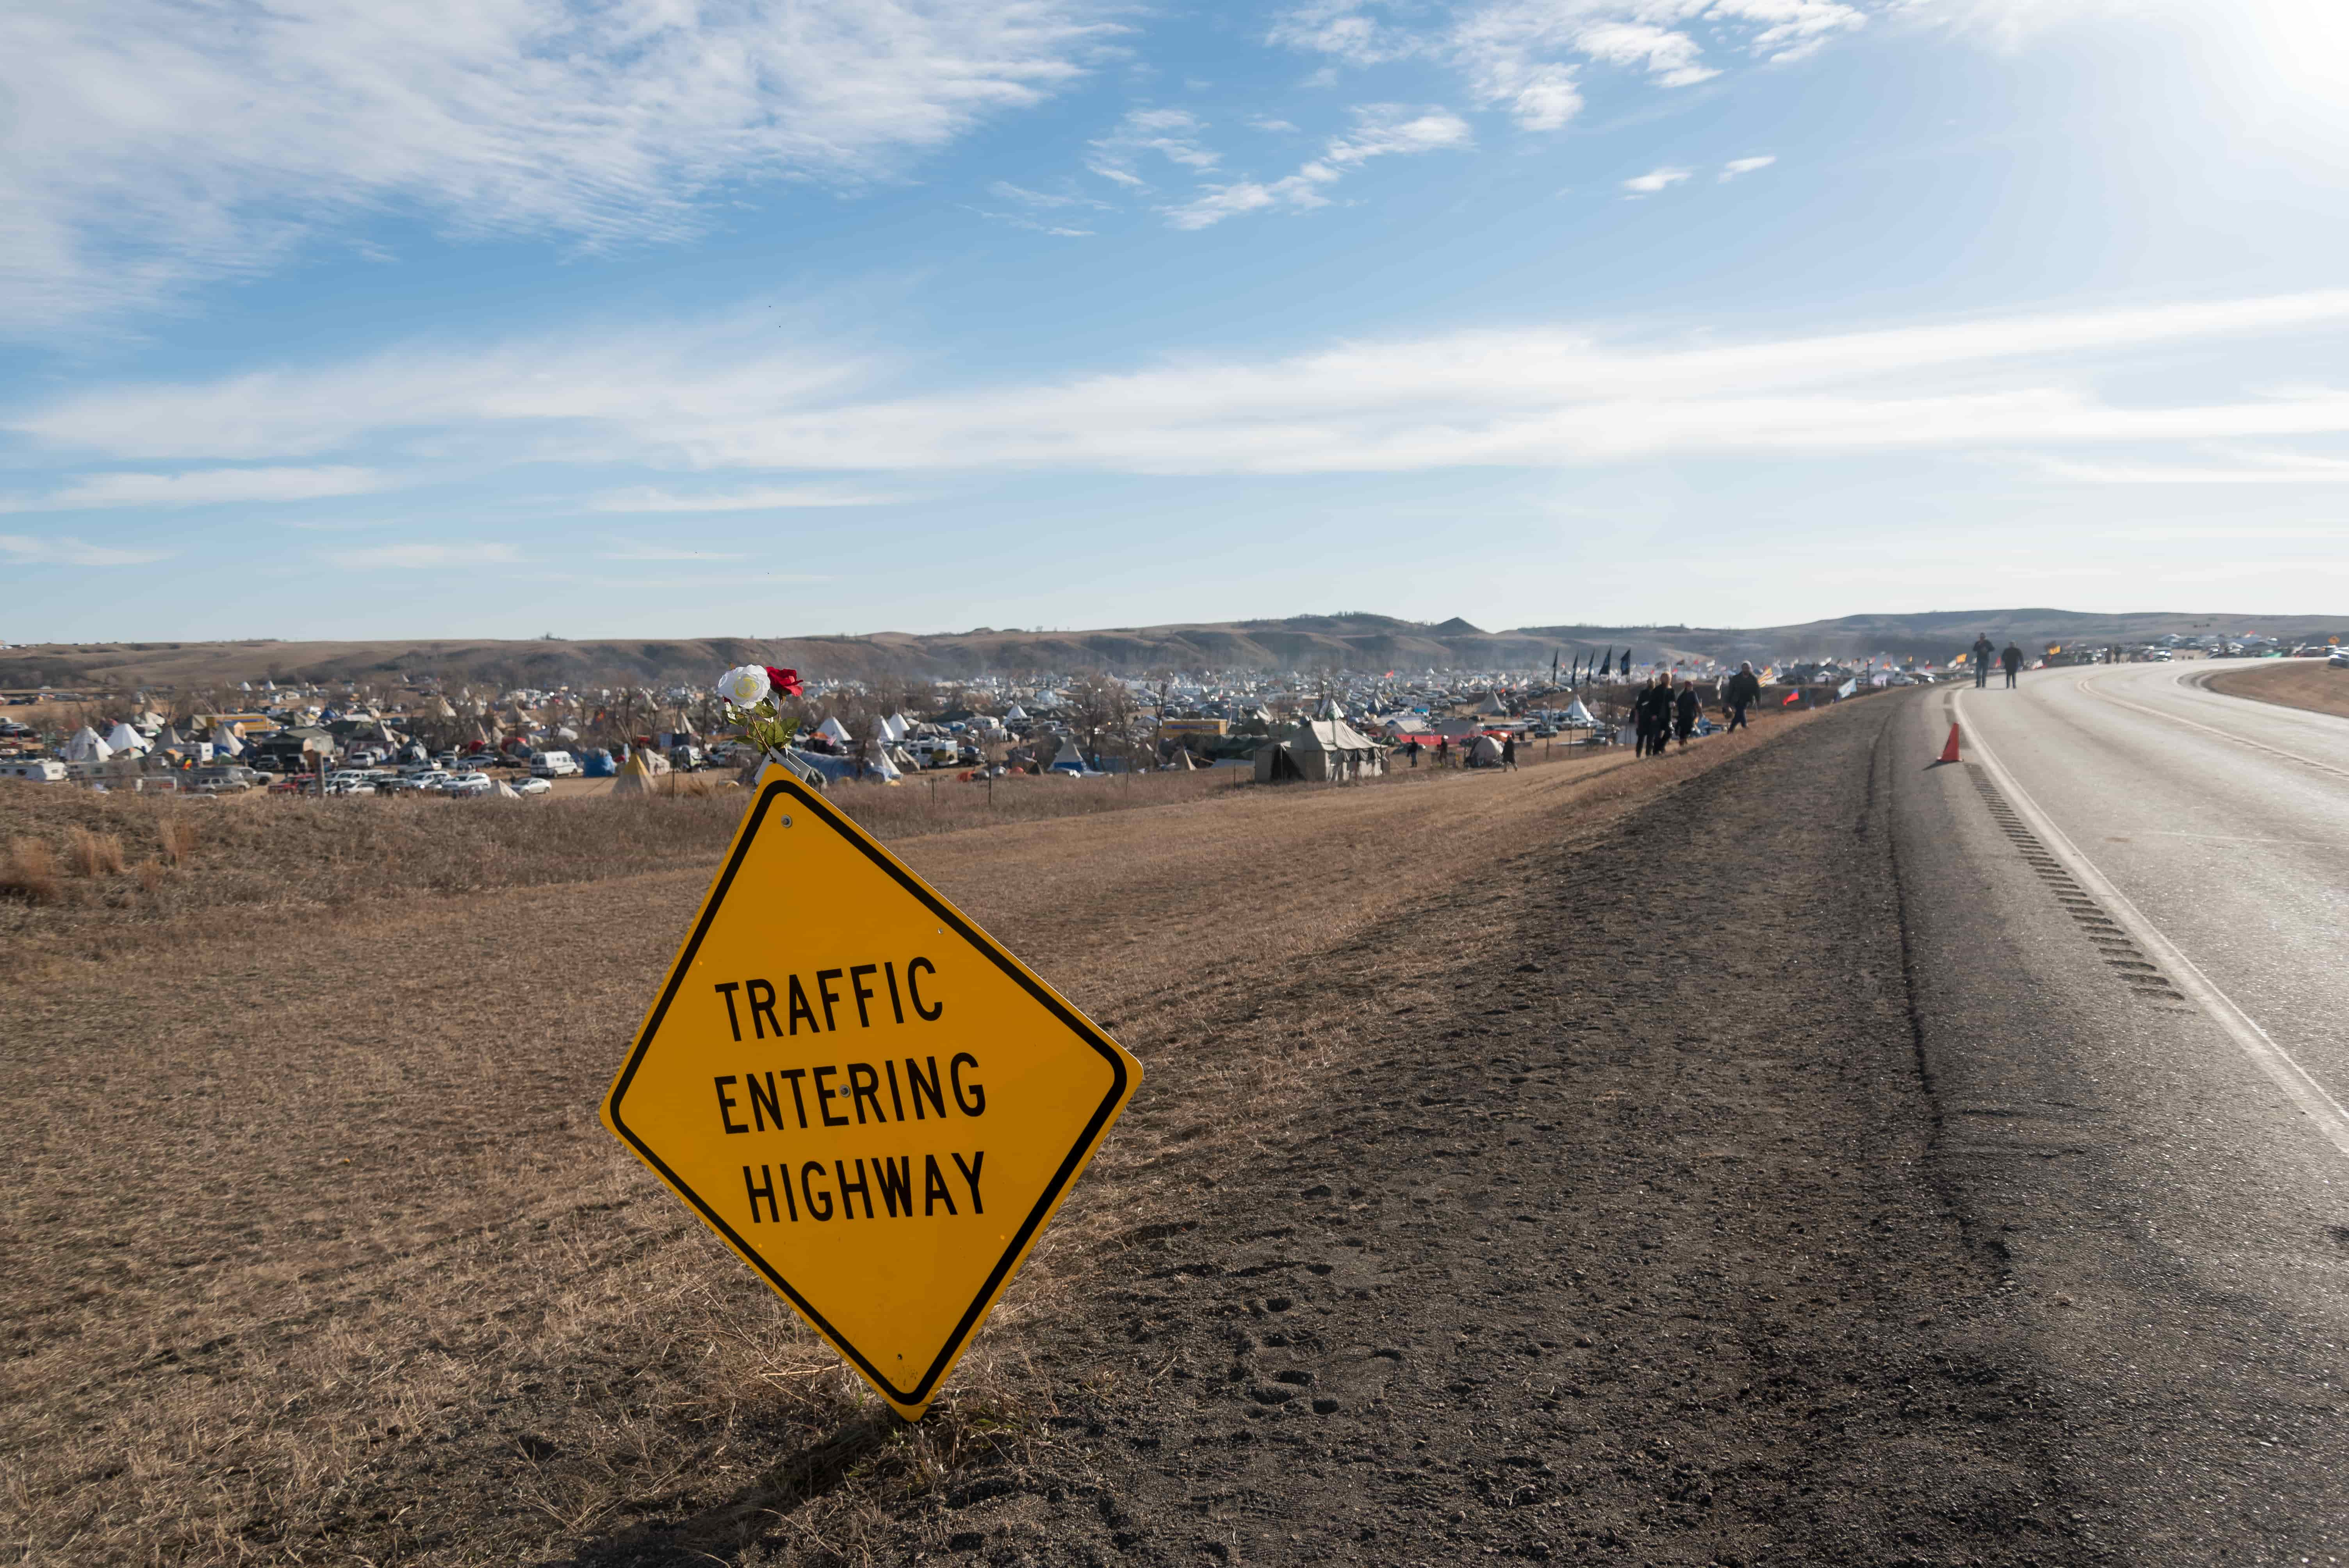 The+road+from+Backwater+Bridge%2C+which+was+closed+by+authorities%2C+and+is+one+of+the+two+ways+to+reach+Oceti+Sakowin+on+Saturday%2C+Nov.+26.